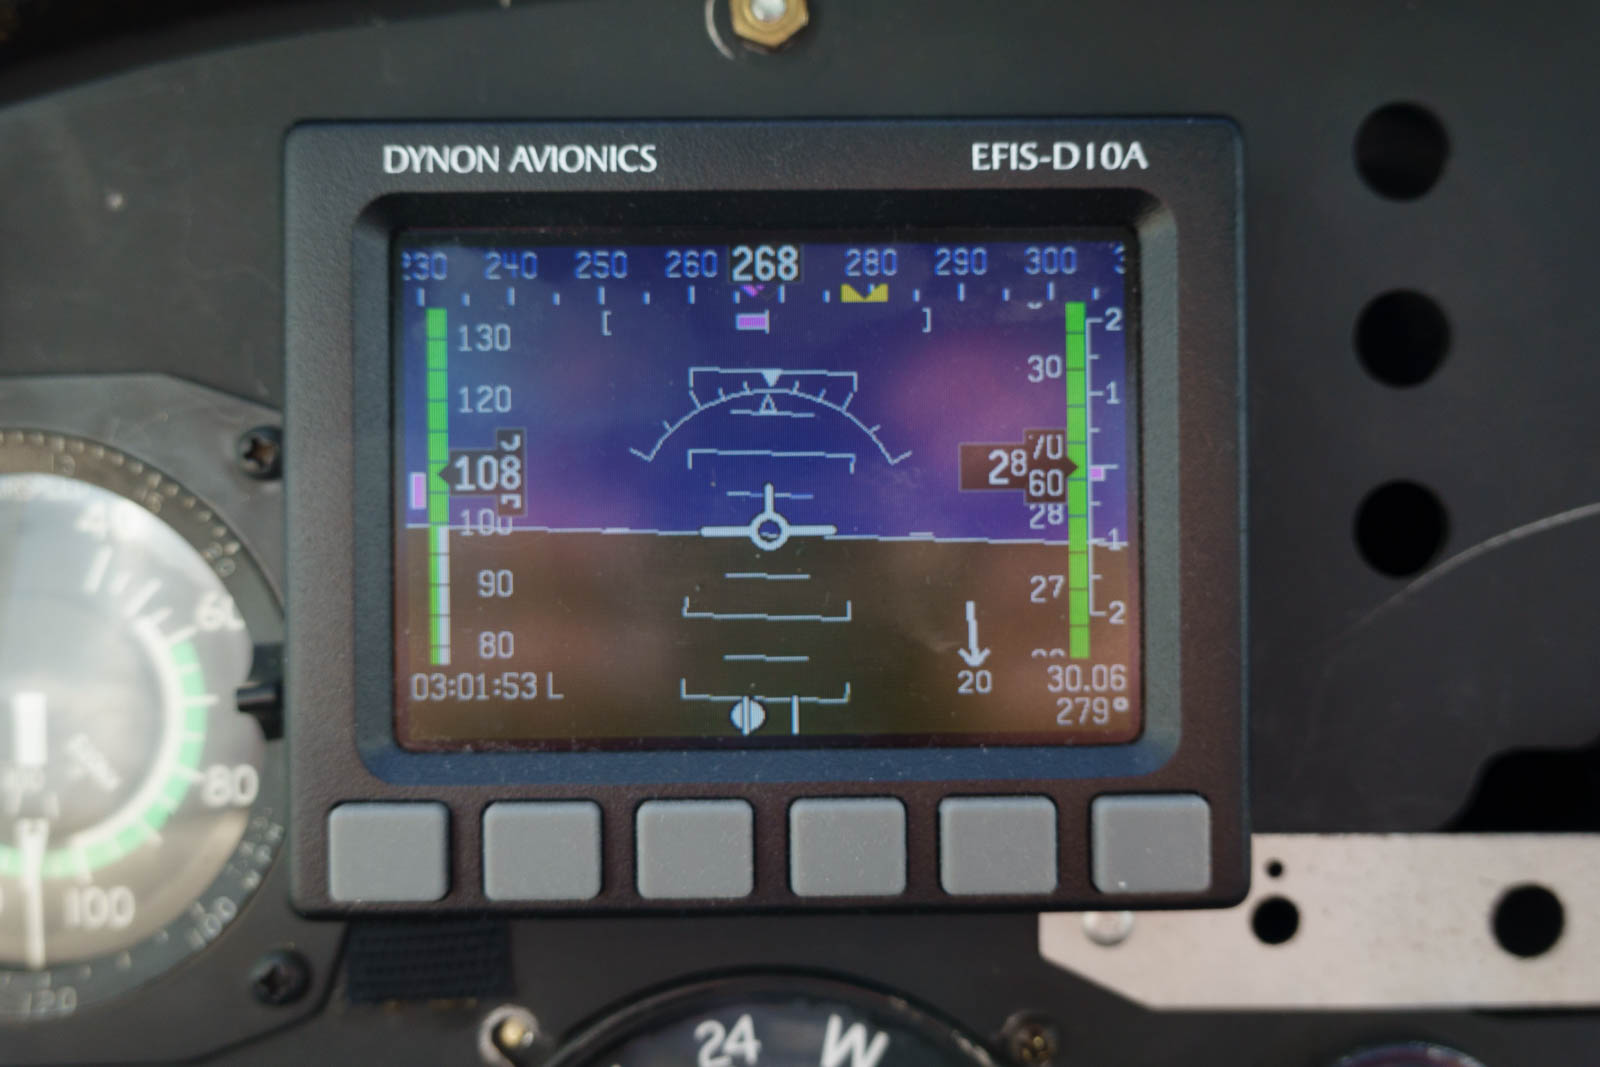 But the 20 kts headwind does not help